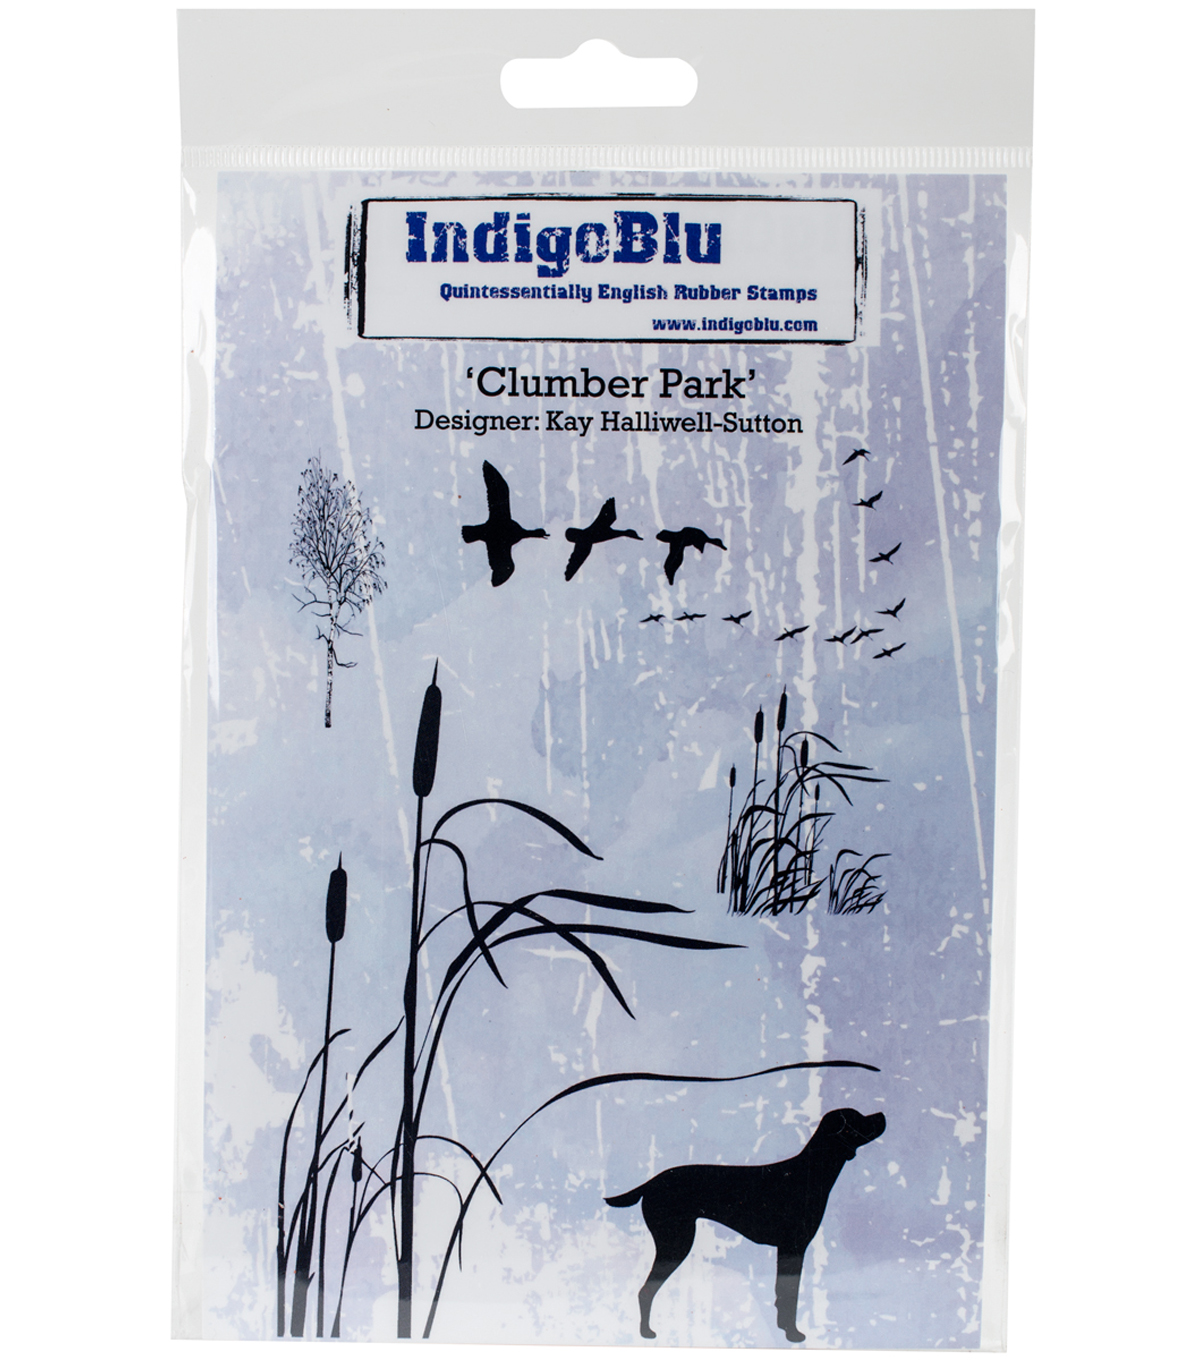 IndigoBlu 6 pk Red Rubber Stamps-Clumber Park